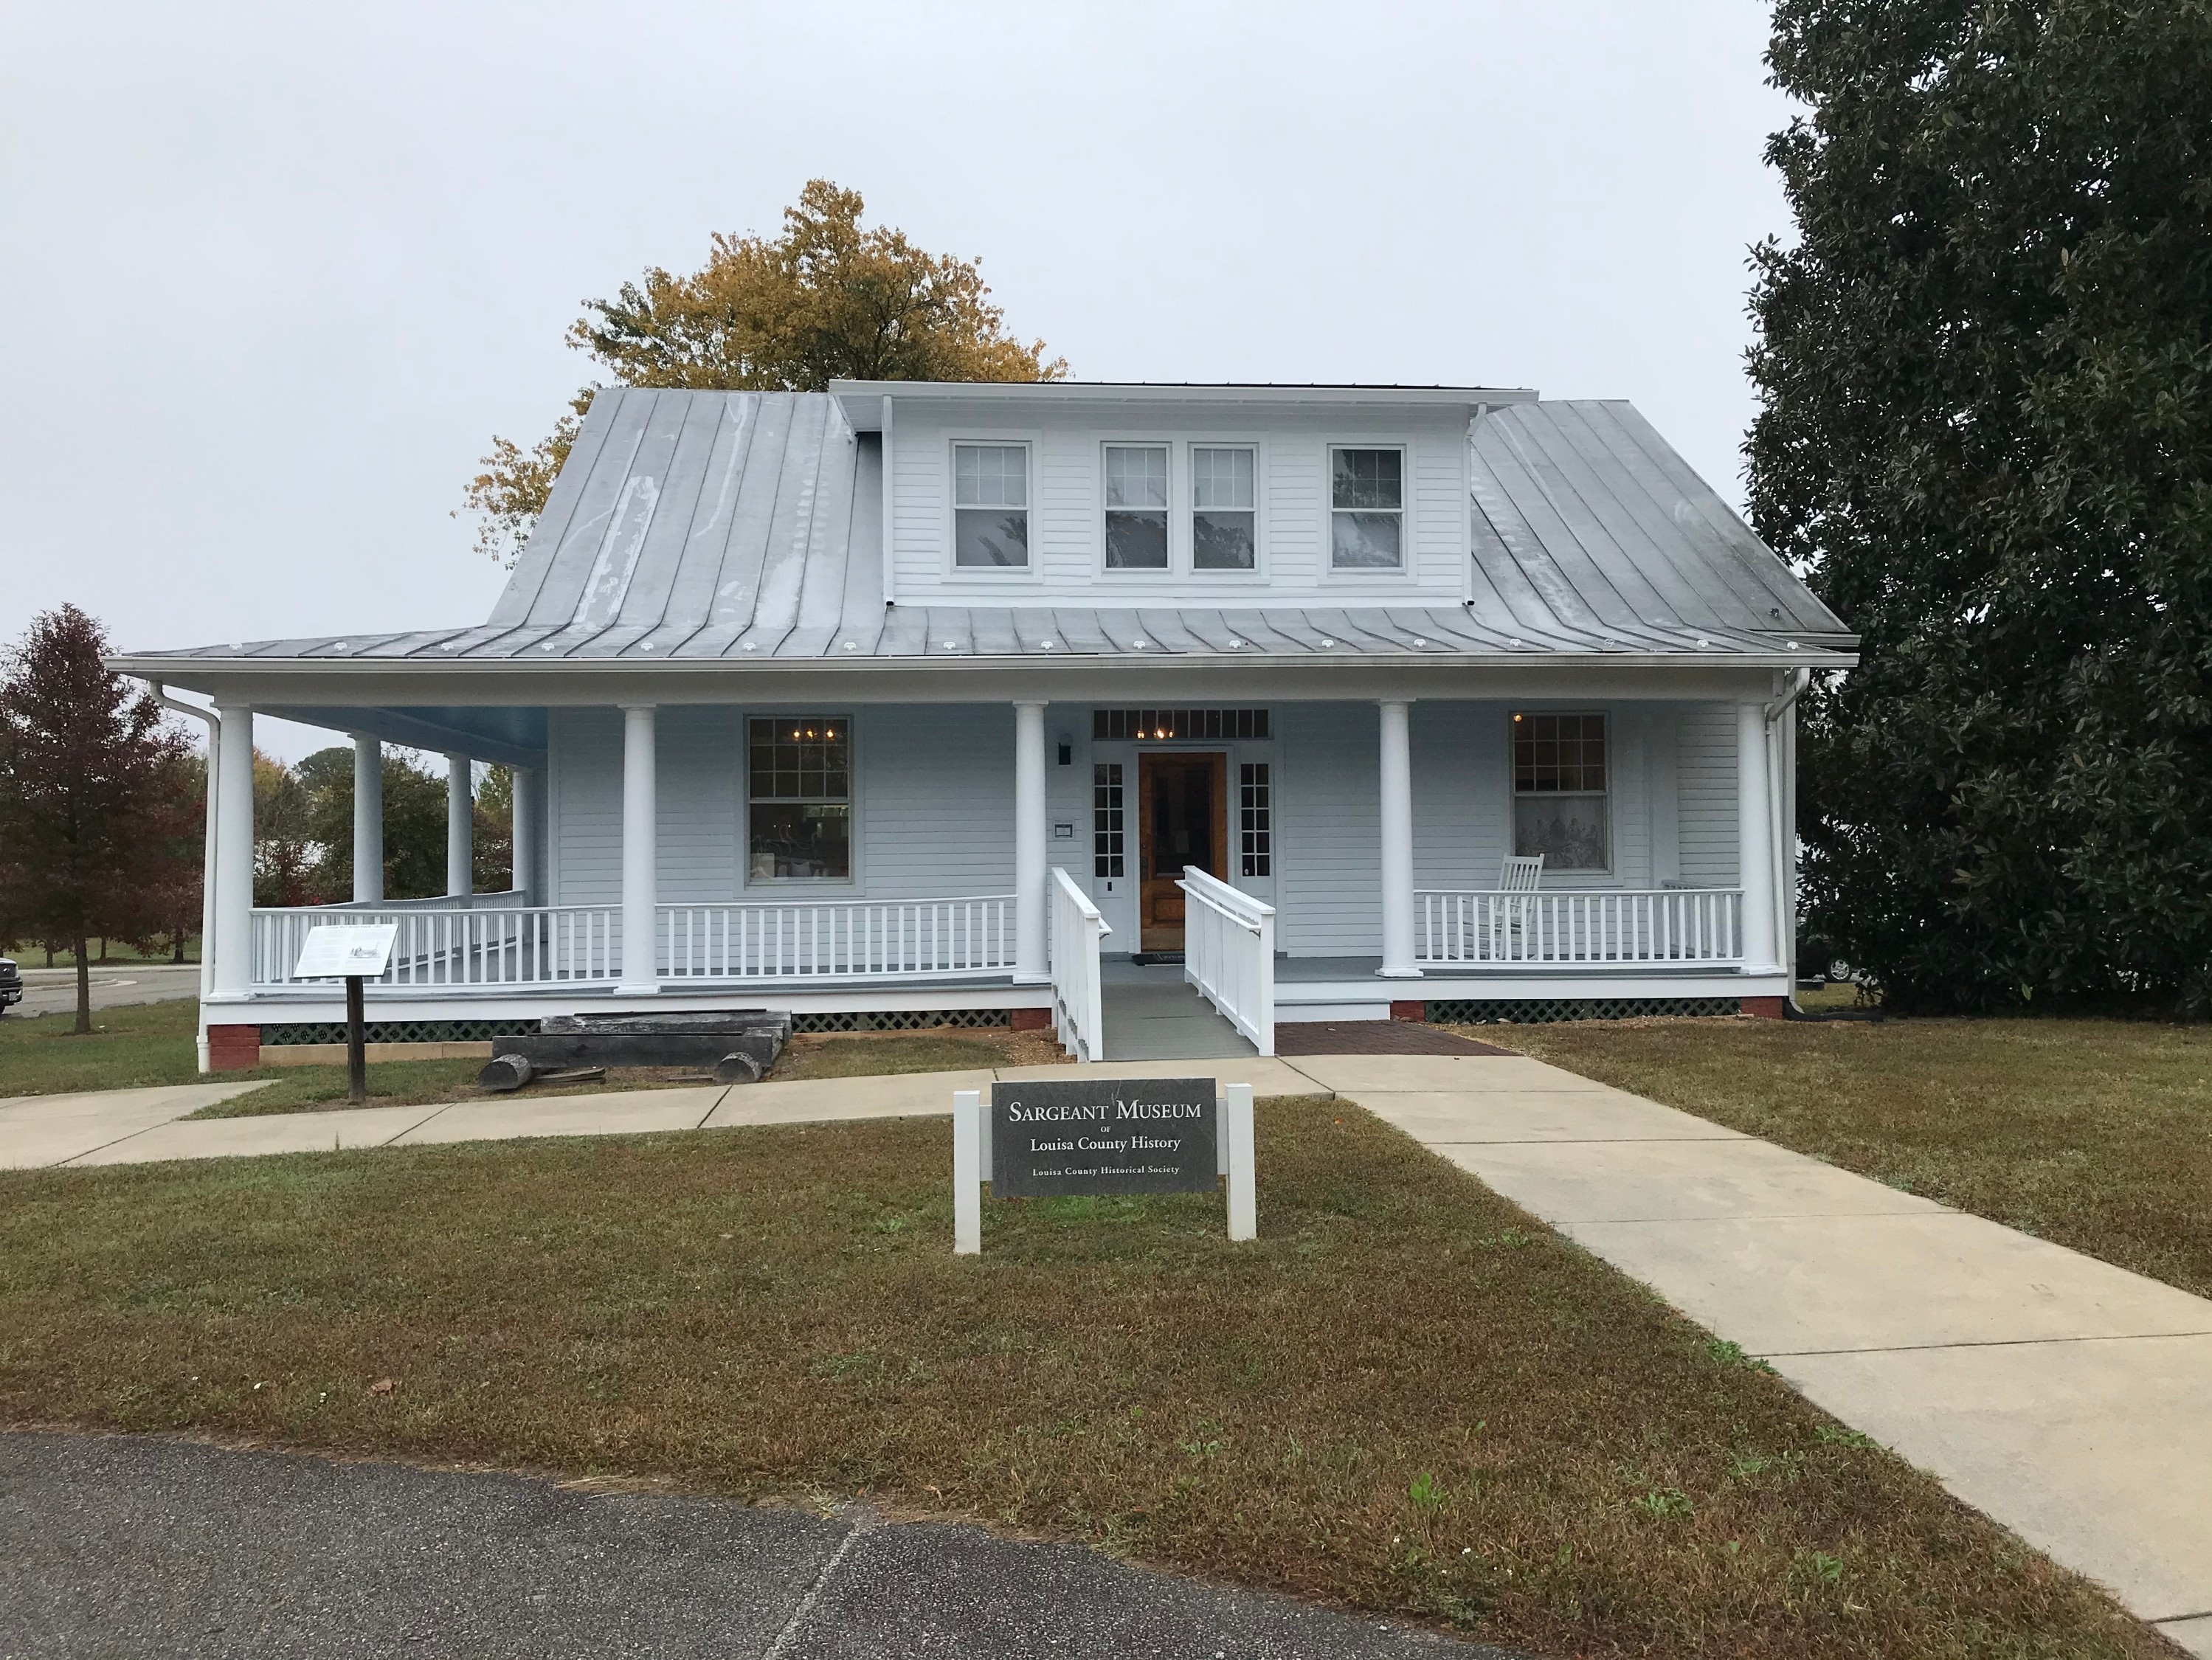 The Sargeant Museum of Louisa County History